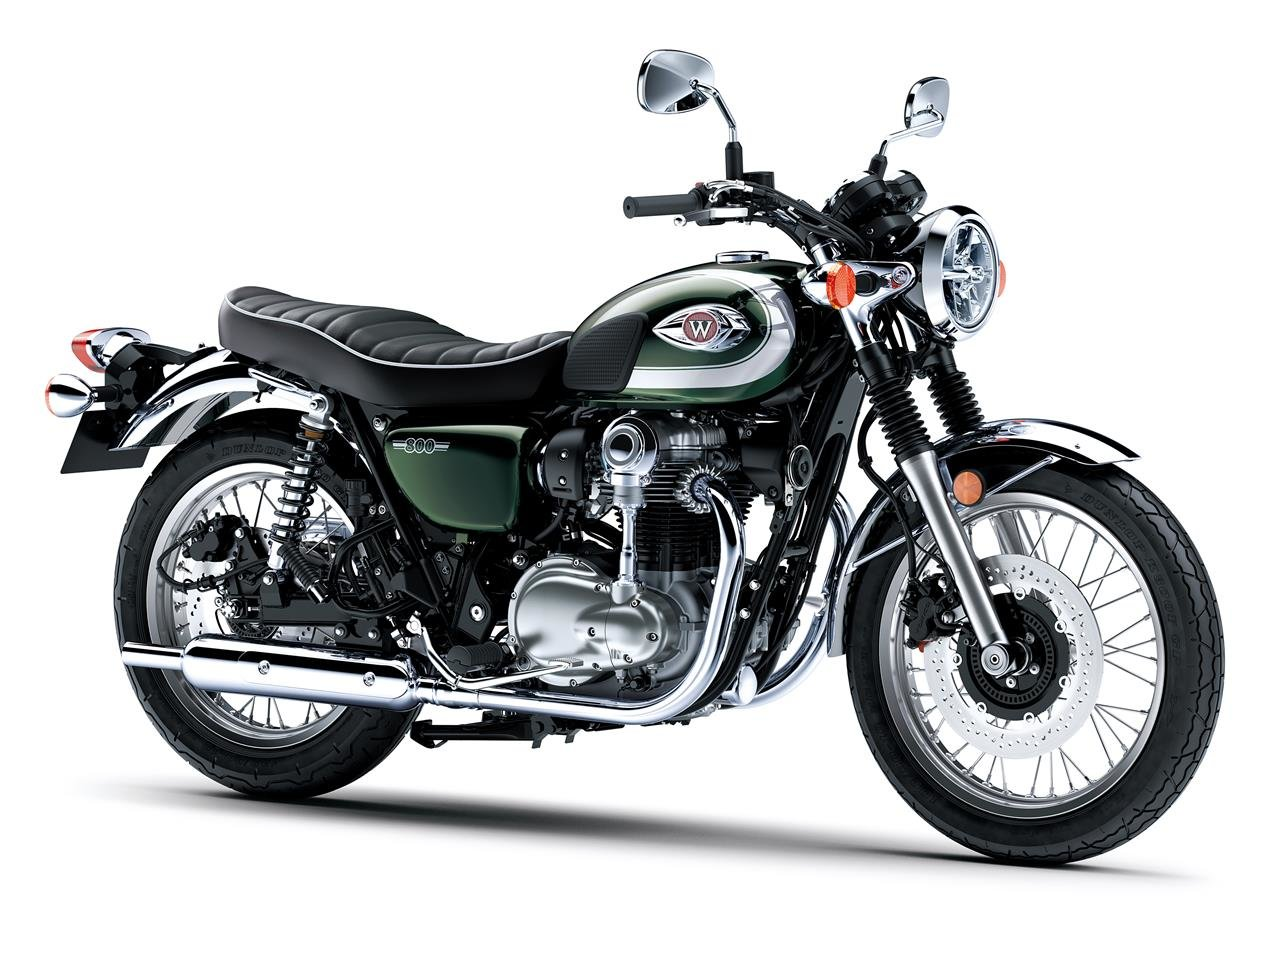 New 2020 Kawasaki W800 ABS **IN STOCK WITH FREE DELIVERY** For Sale (picture 1 of 6)